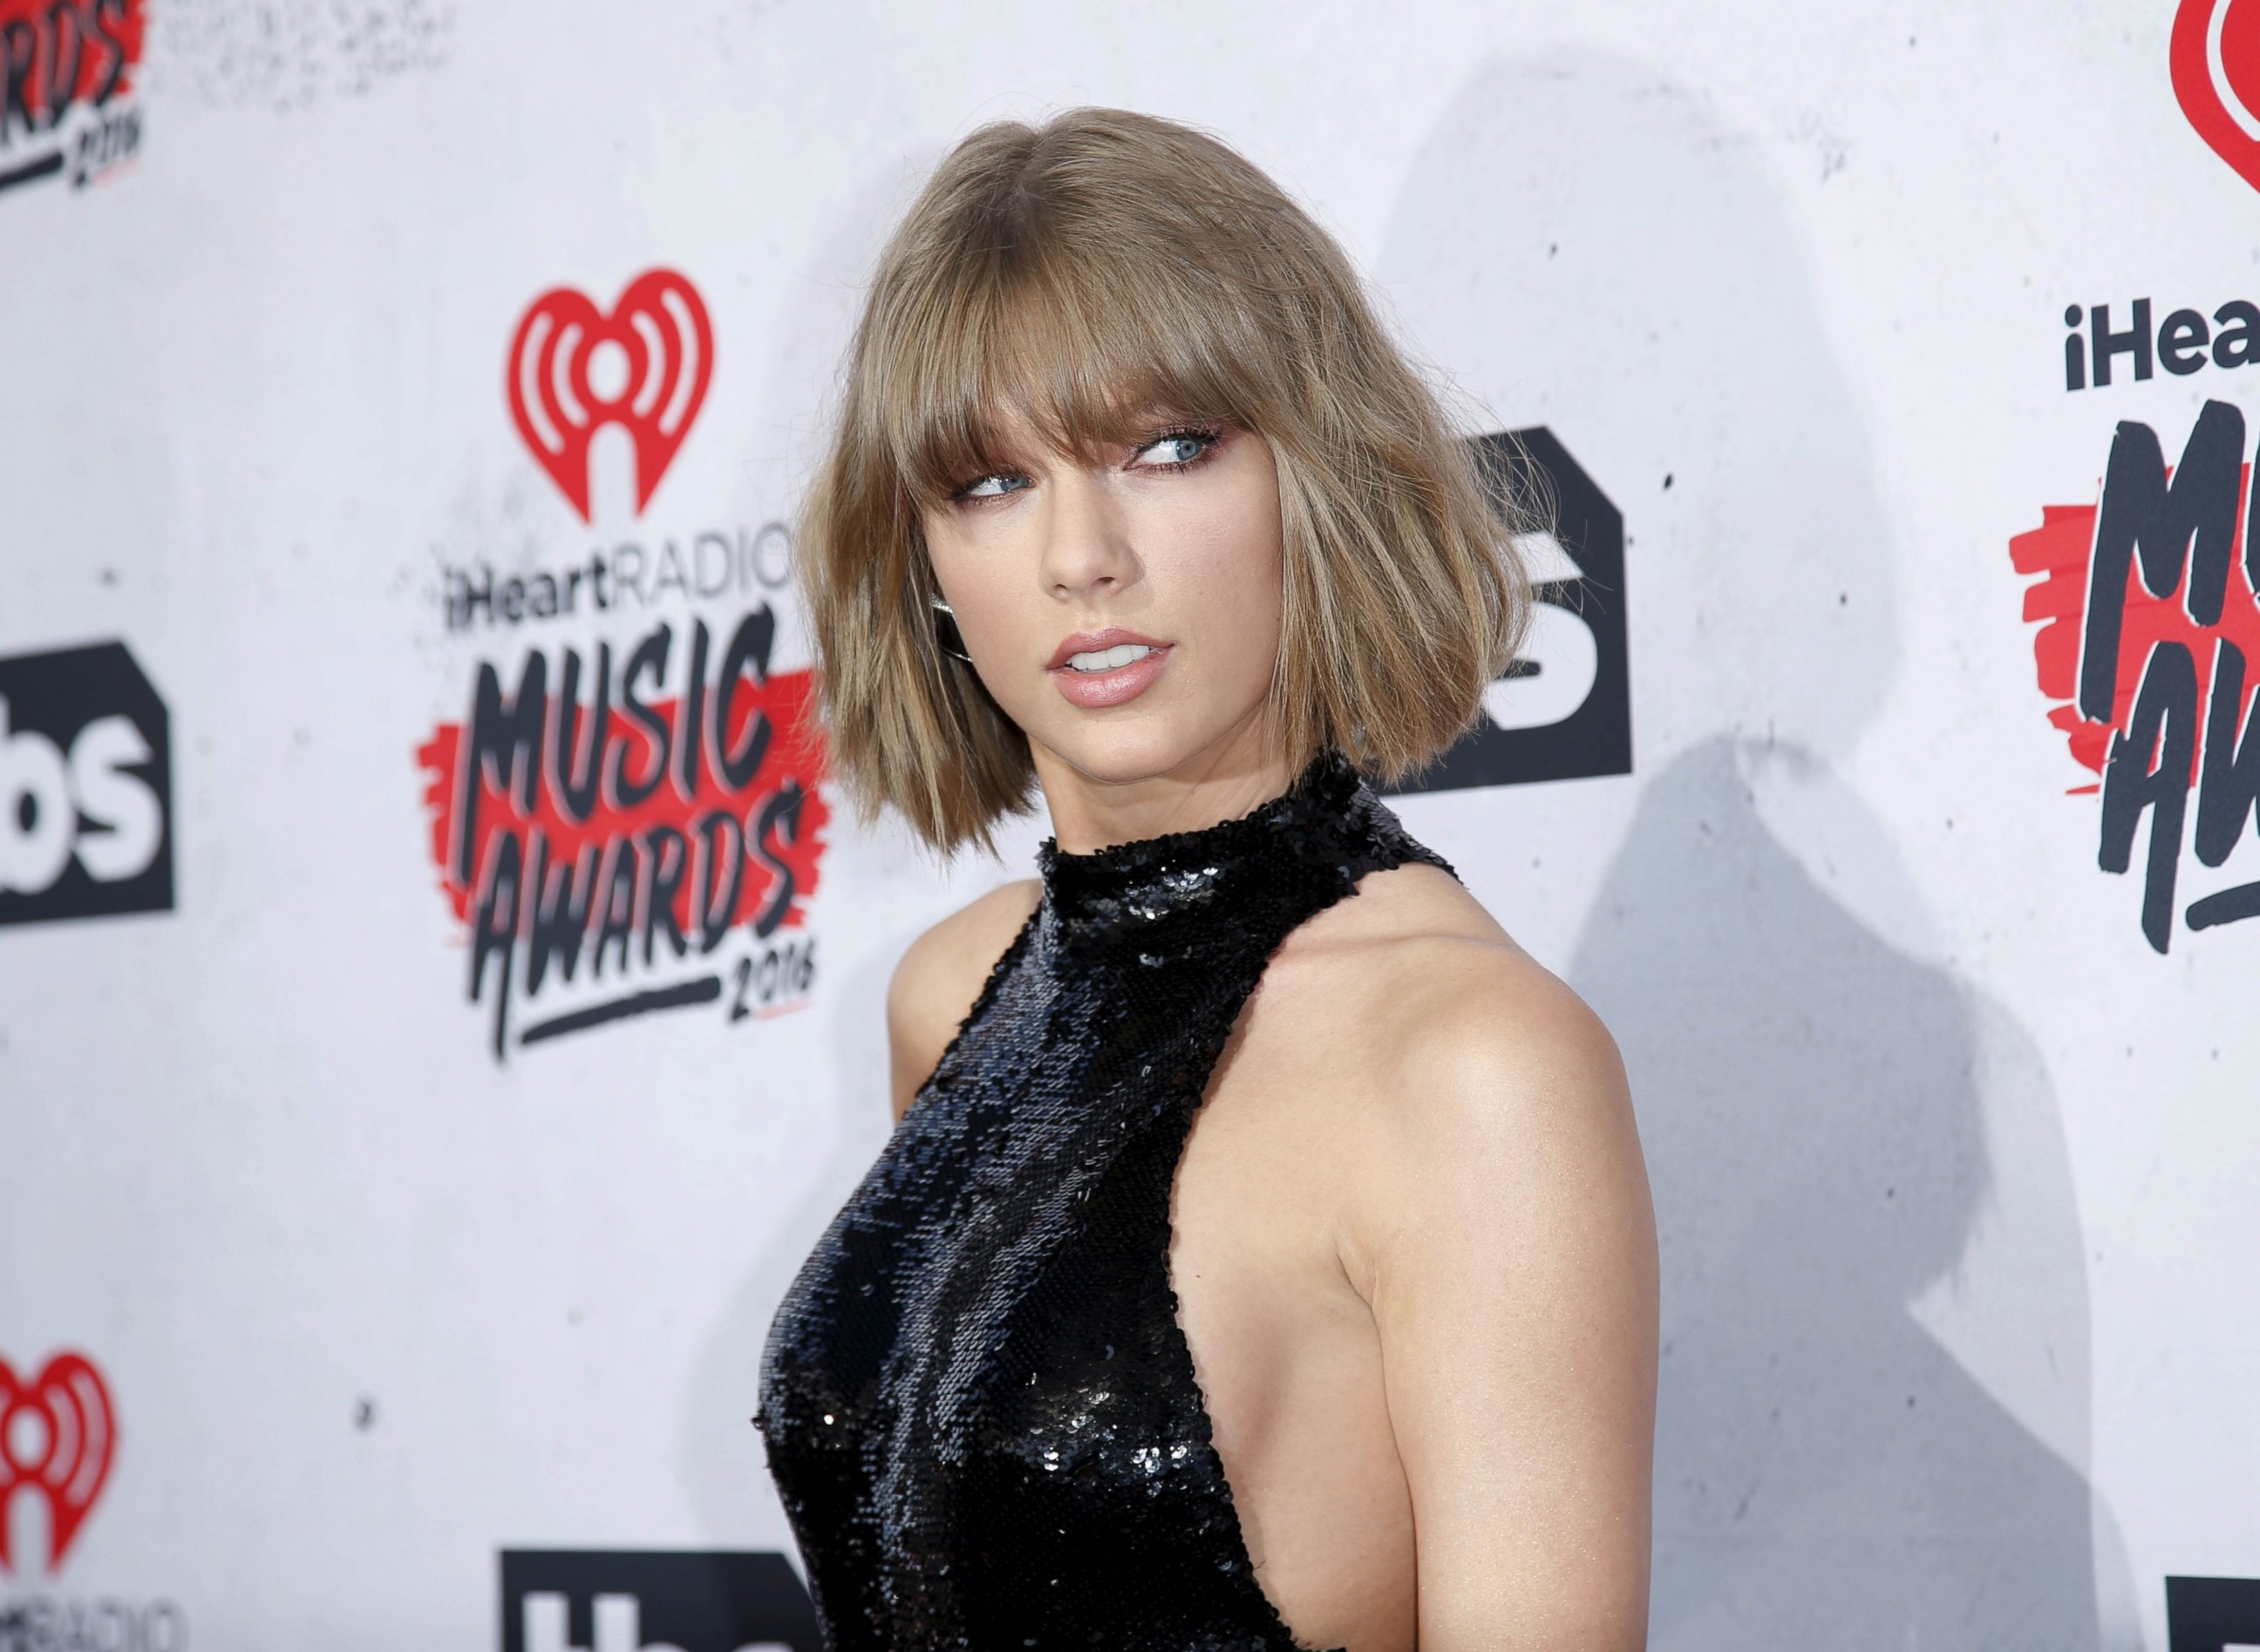 Photo Singer Taylor Swift Poses At The 2016 Iheartradio Music